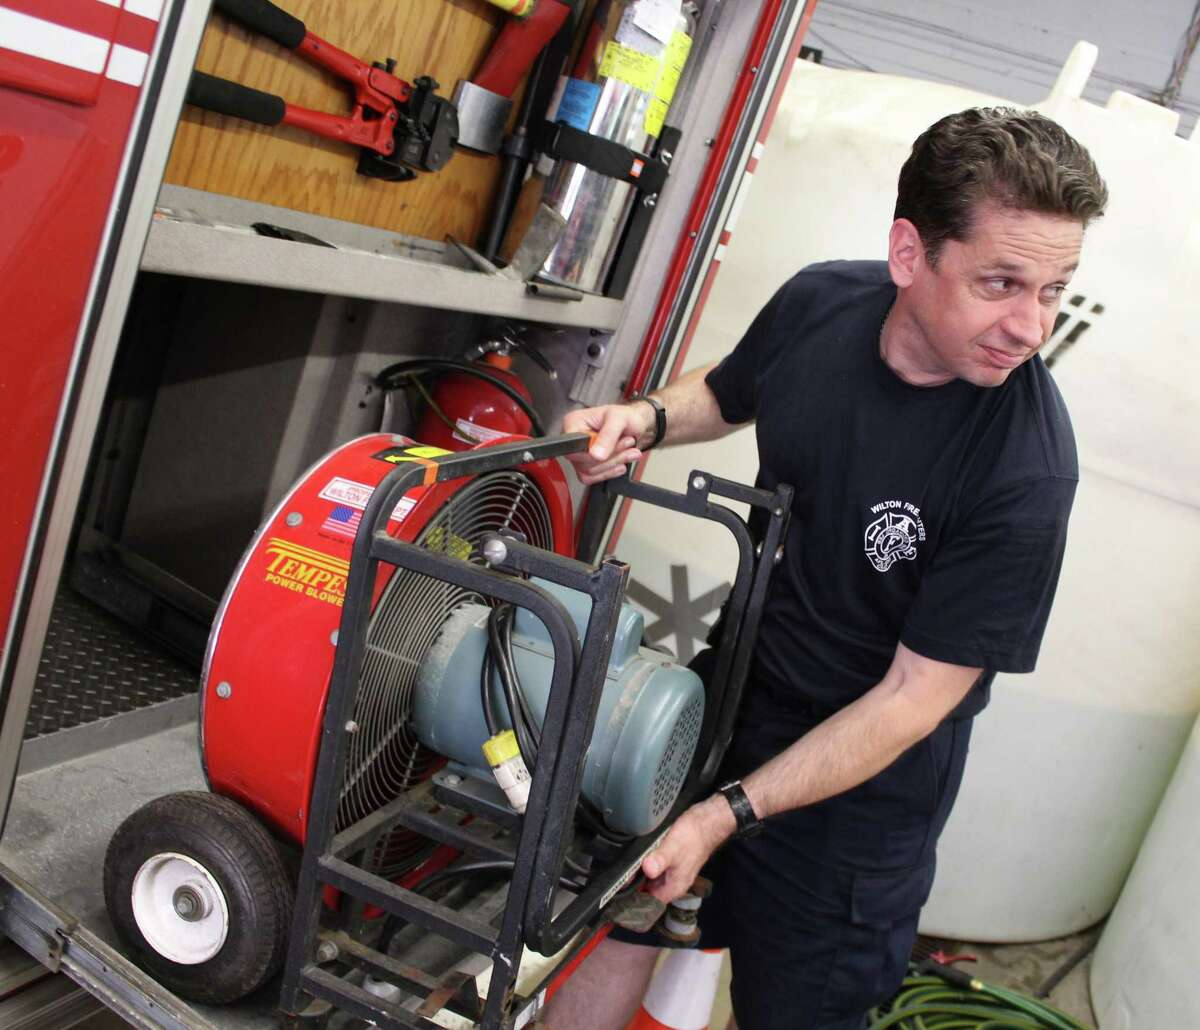 Bryan Montgomery, a five-year veteran of the Wilton Fire Department, checks a fire truck's inventory during the morning shift at Fire House 2 in North Wilton.